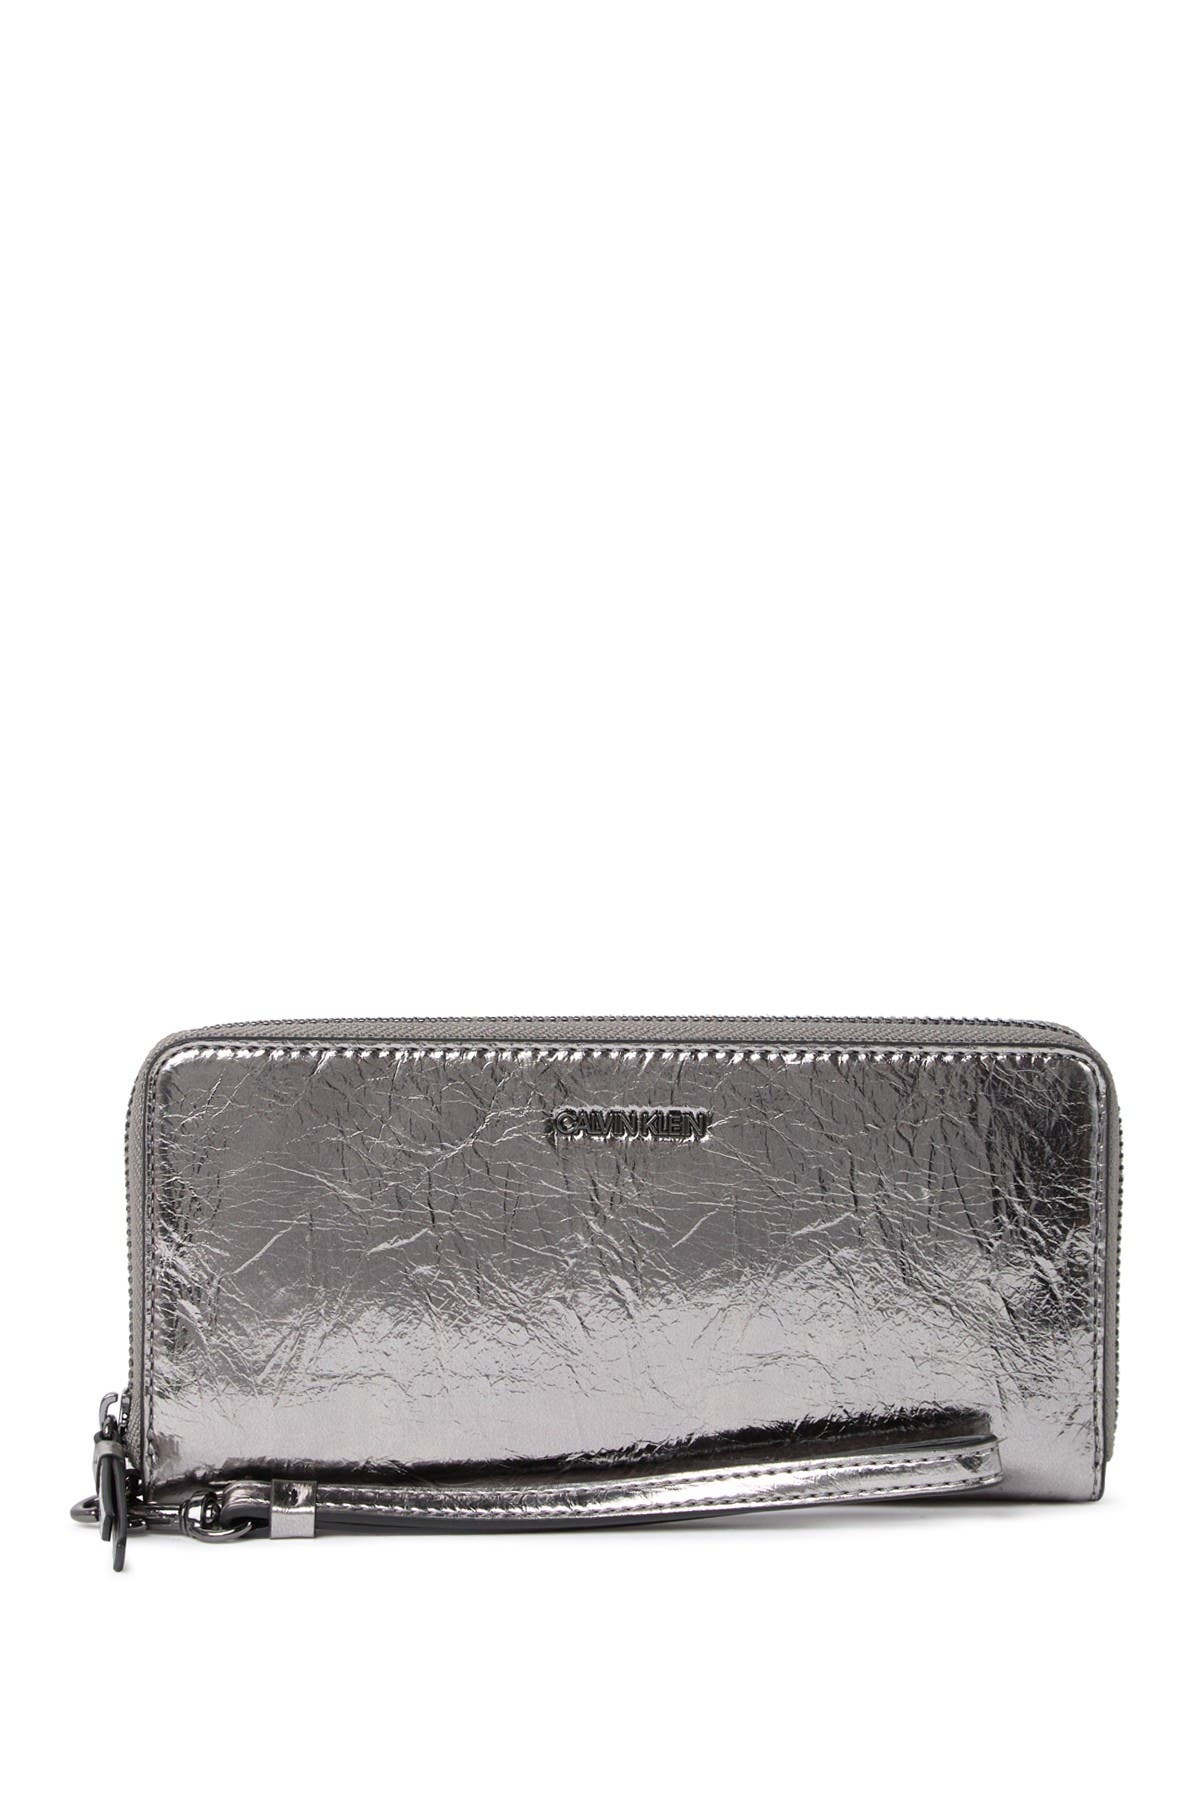 Image of Calvin Klein Key Item Signature Continental Wallet